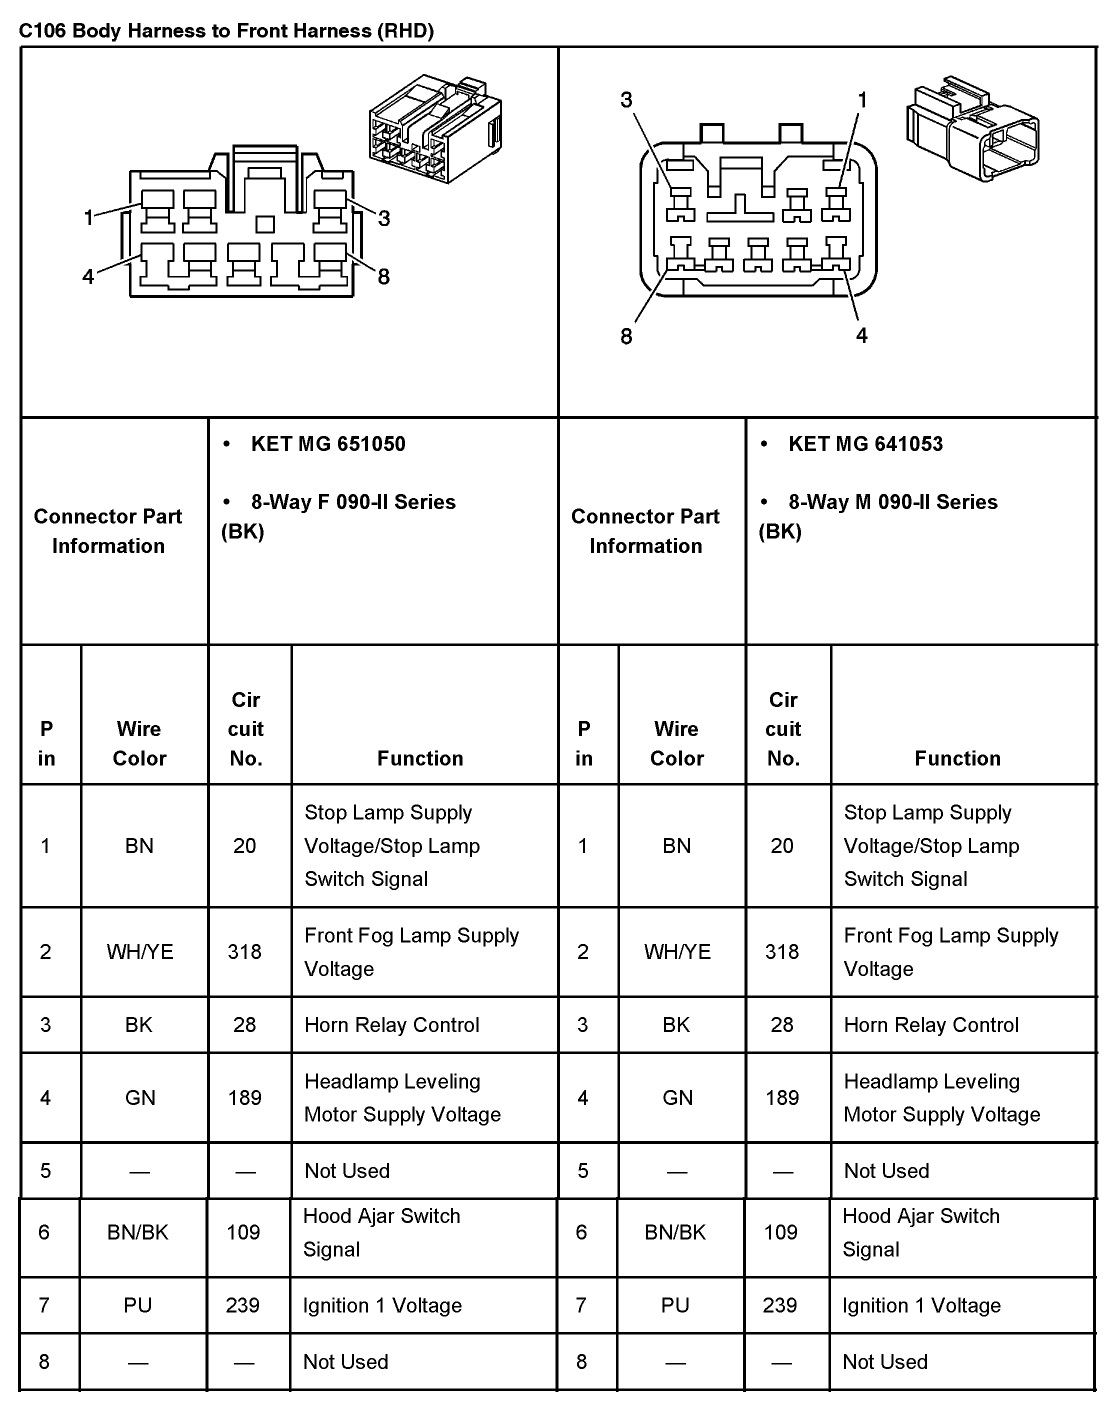 2006 Chevrolet Aveo Wiring Diagram Diy Enthusiasts Diagrams Chevy Trailblazer Engine Http Wwwjustanswercom 2005 Master Connector List And Rh Aveoforum Com